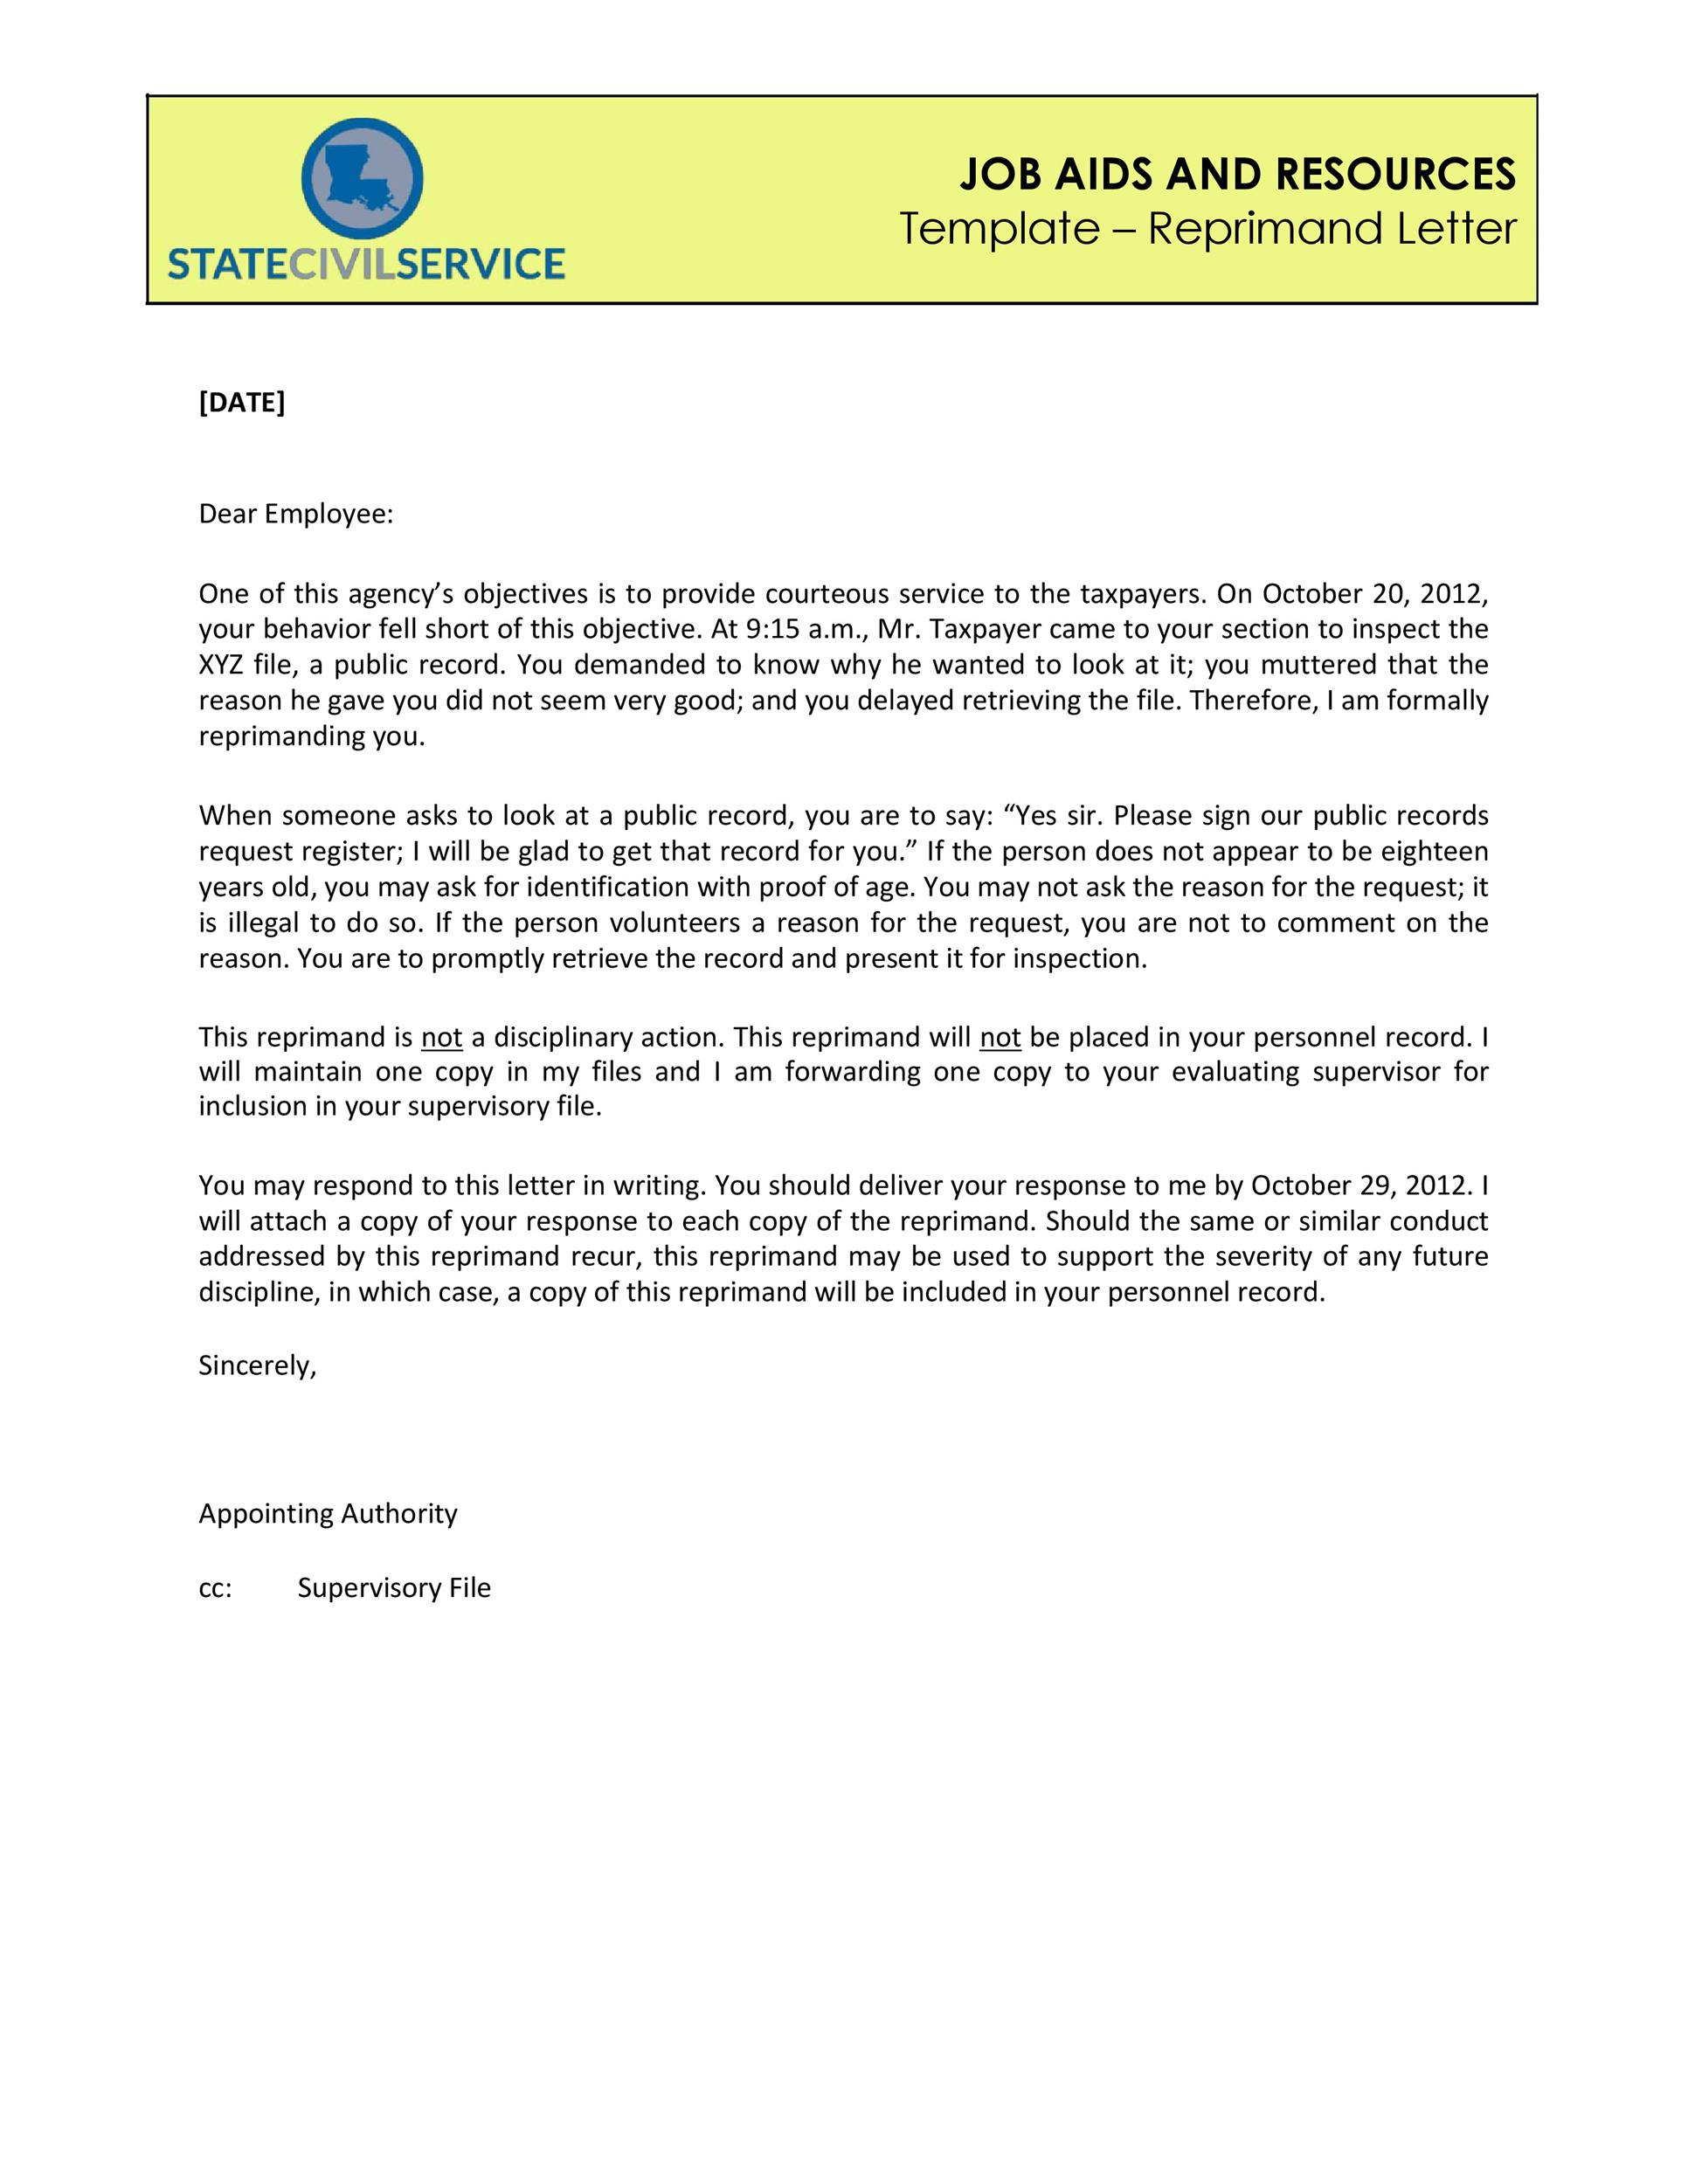 Free letter of reprimand 02